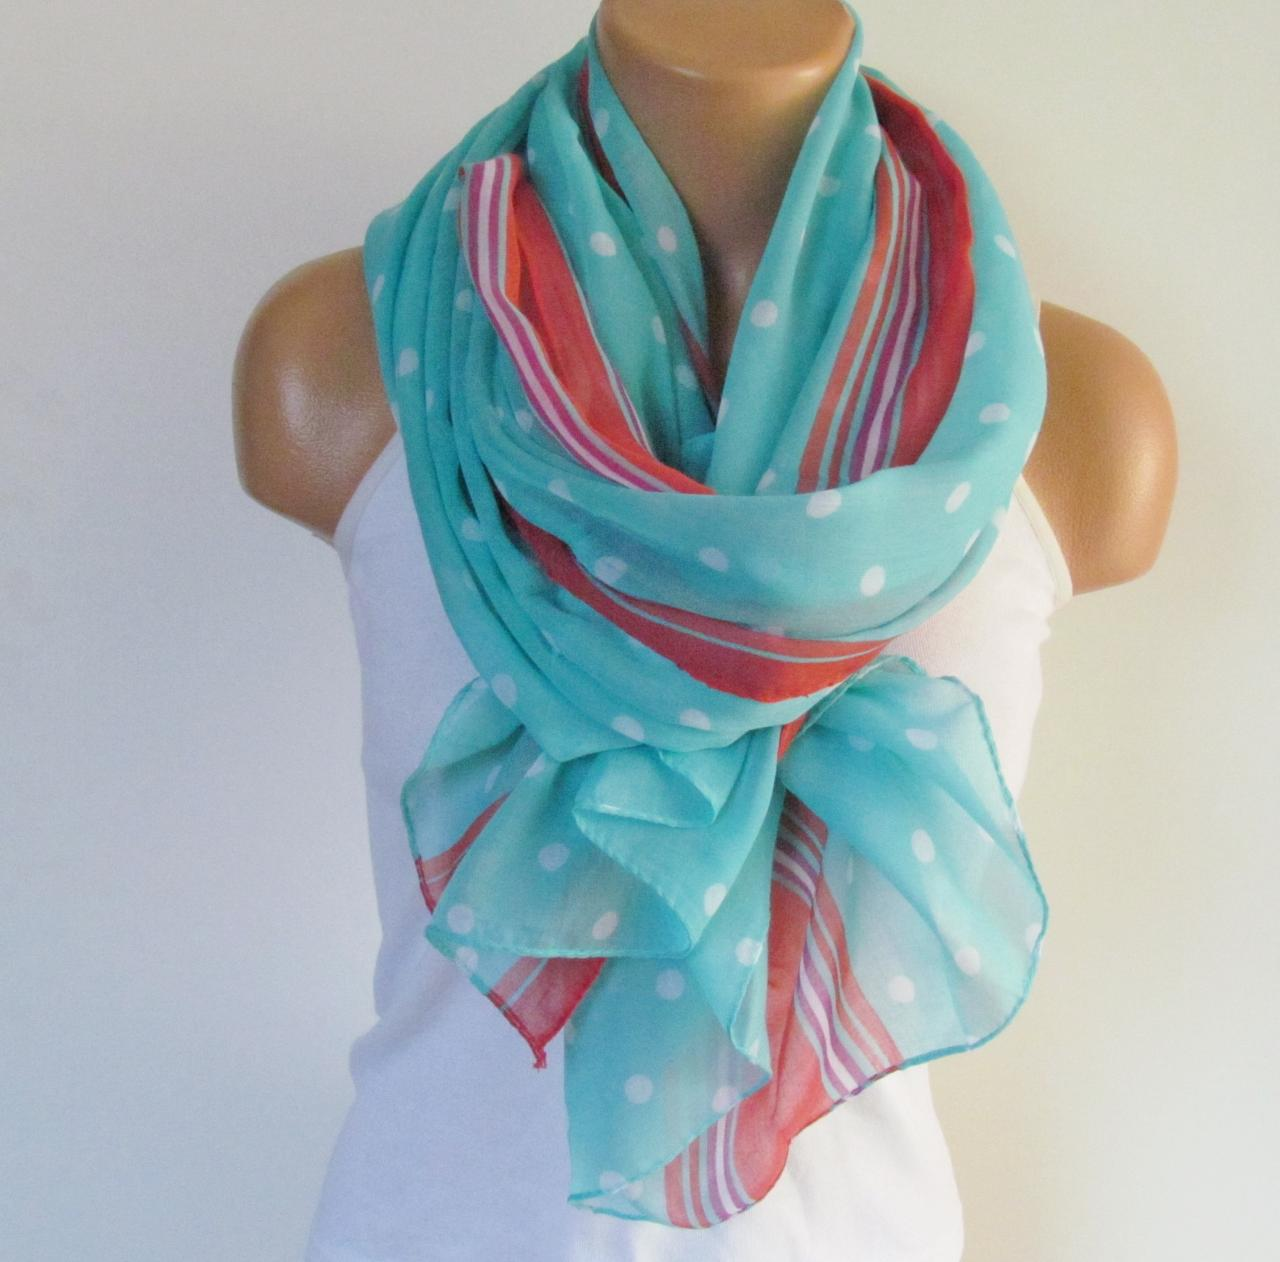 Polka Dot Scarf-Beach Pareo-Infinity Scarf- Beach Sarong-Long Scarf-New Season-Oversize Mint Red White Scarf